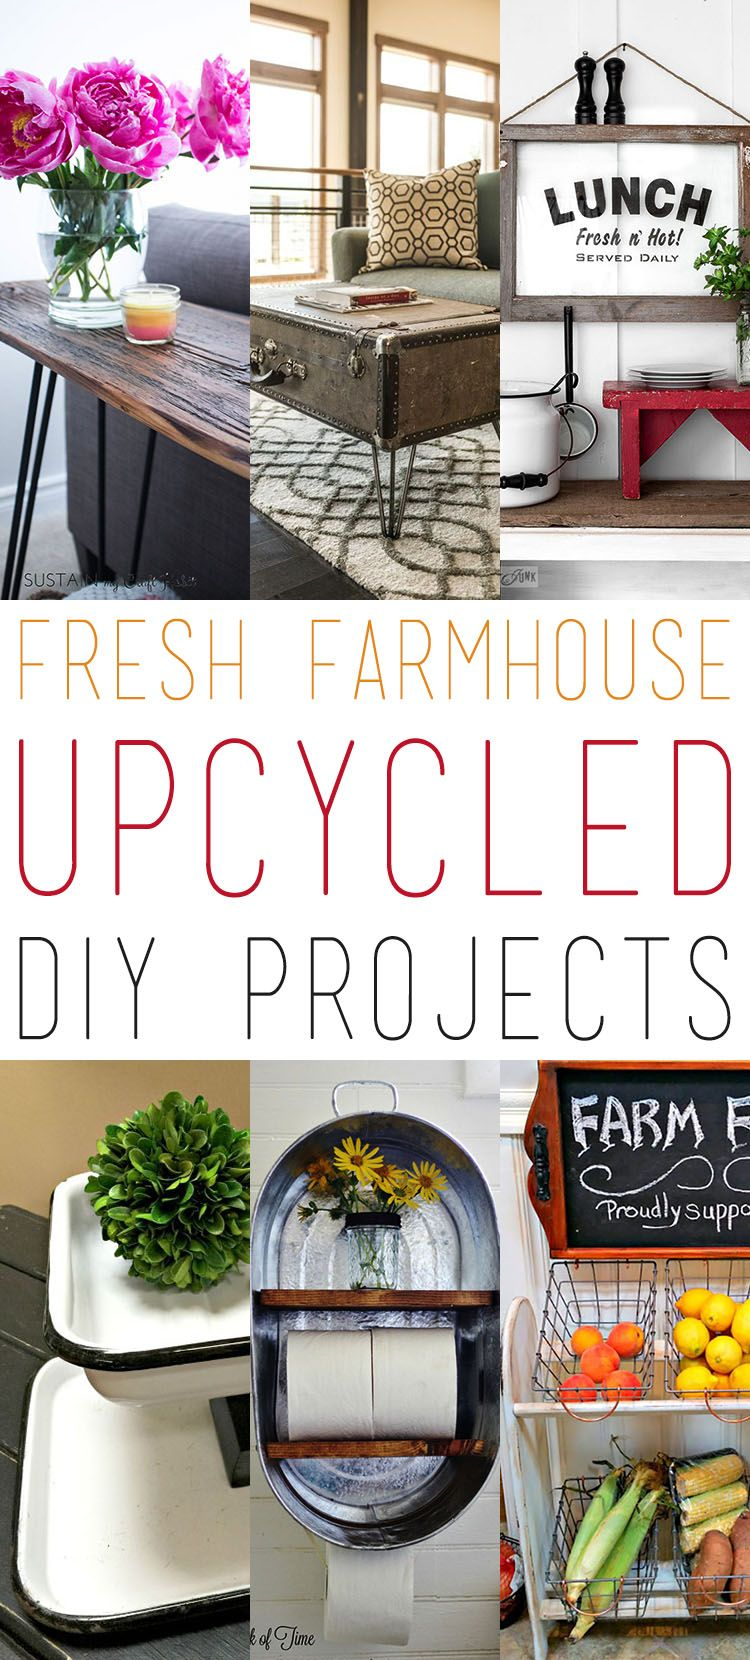 Fresh Farmhouse Upcycled DIY Projects The